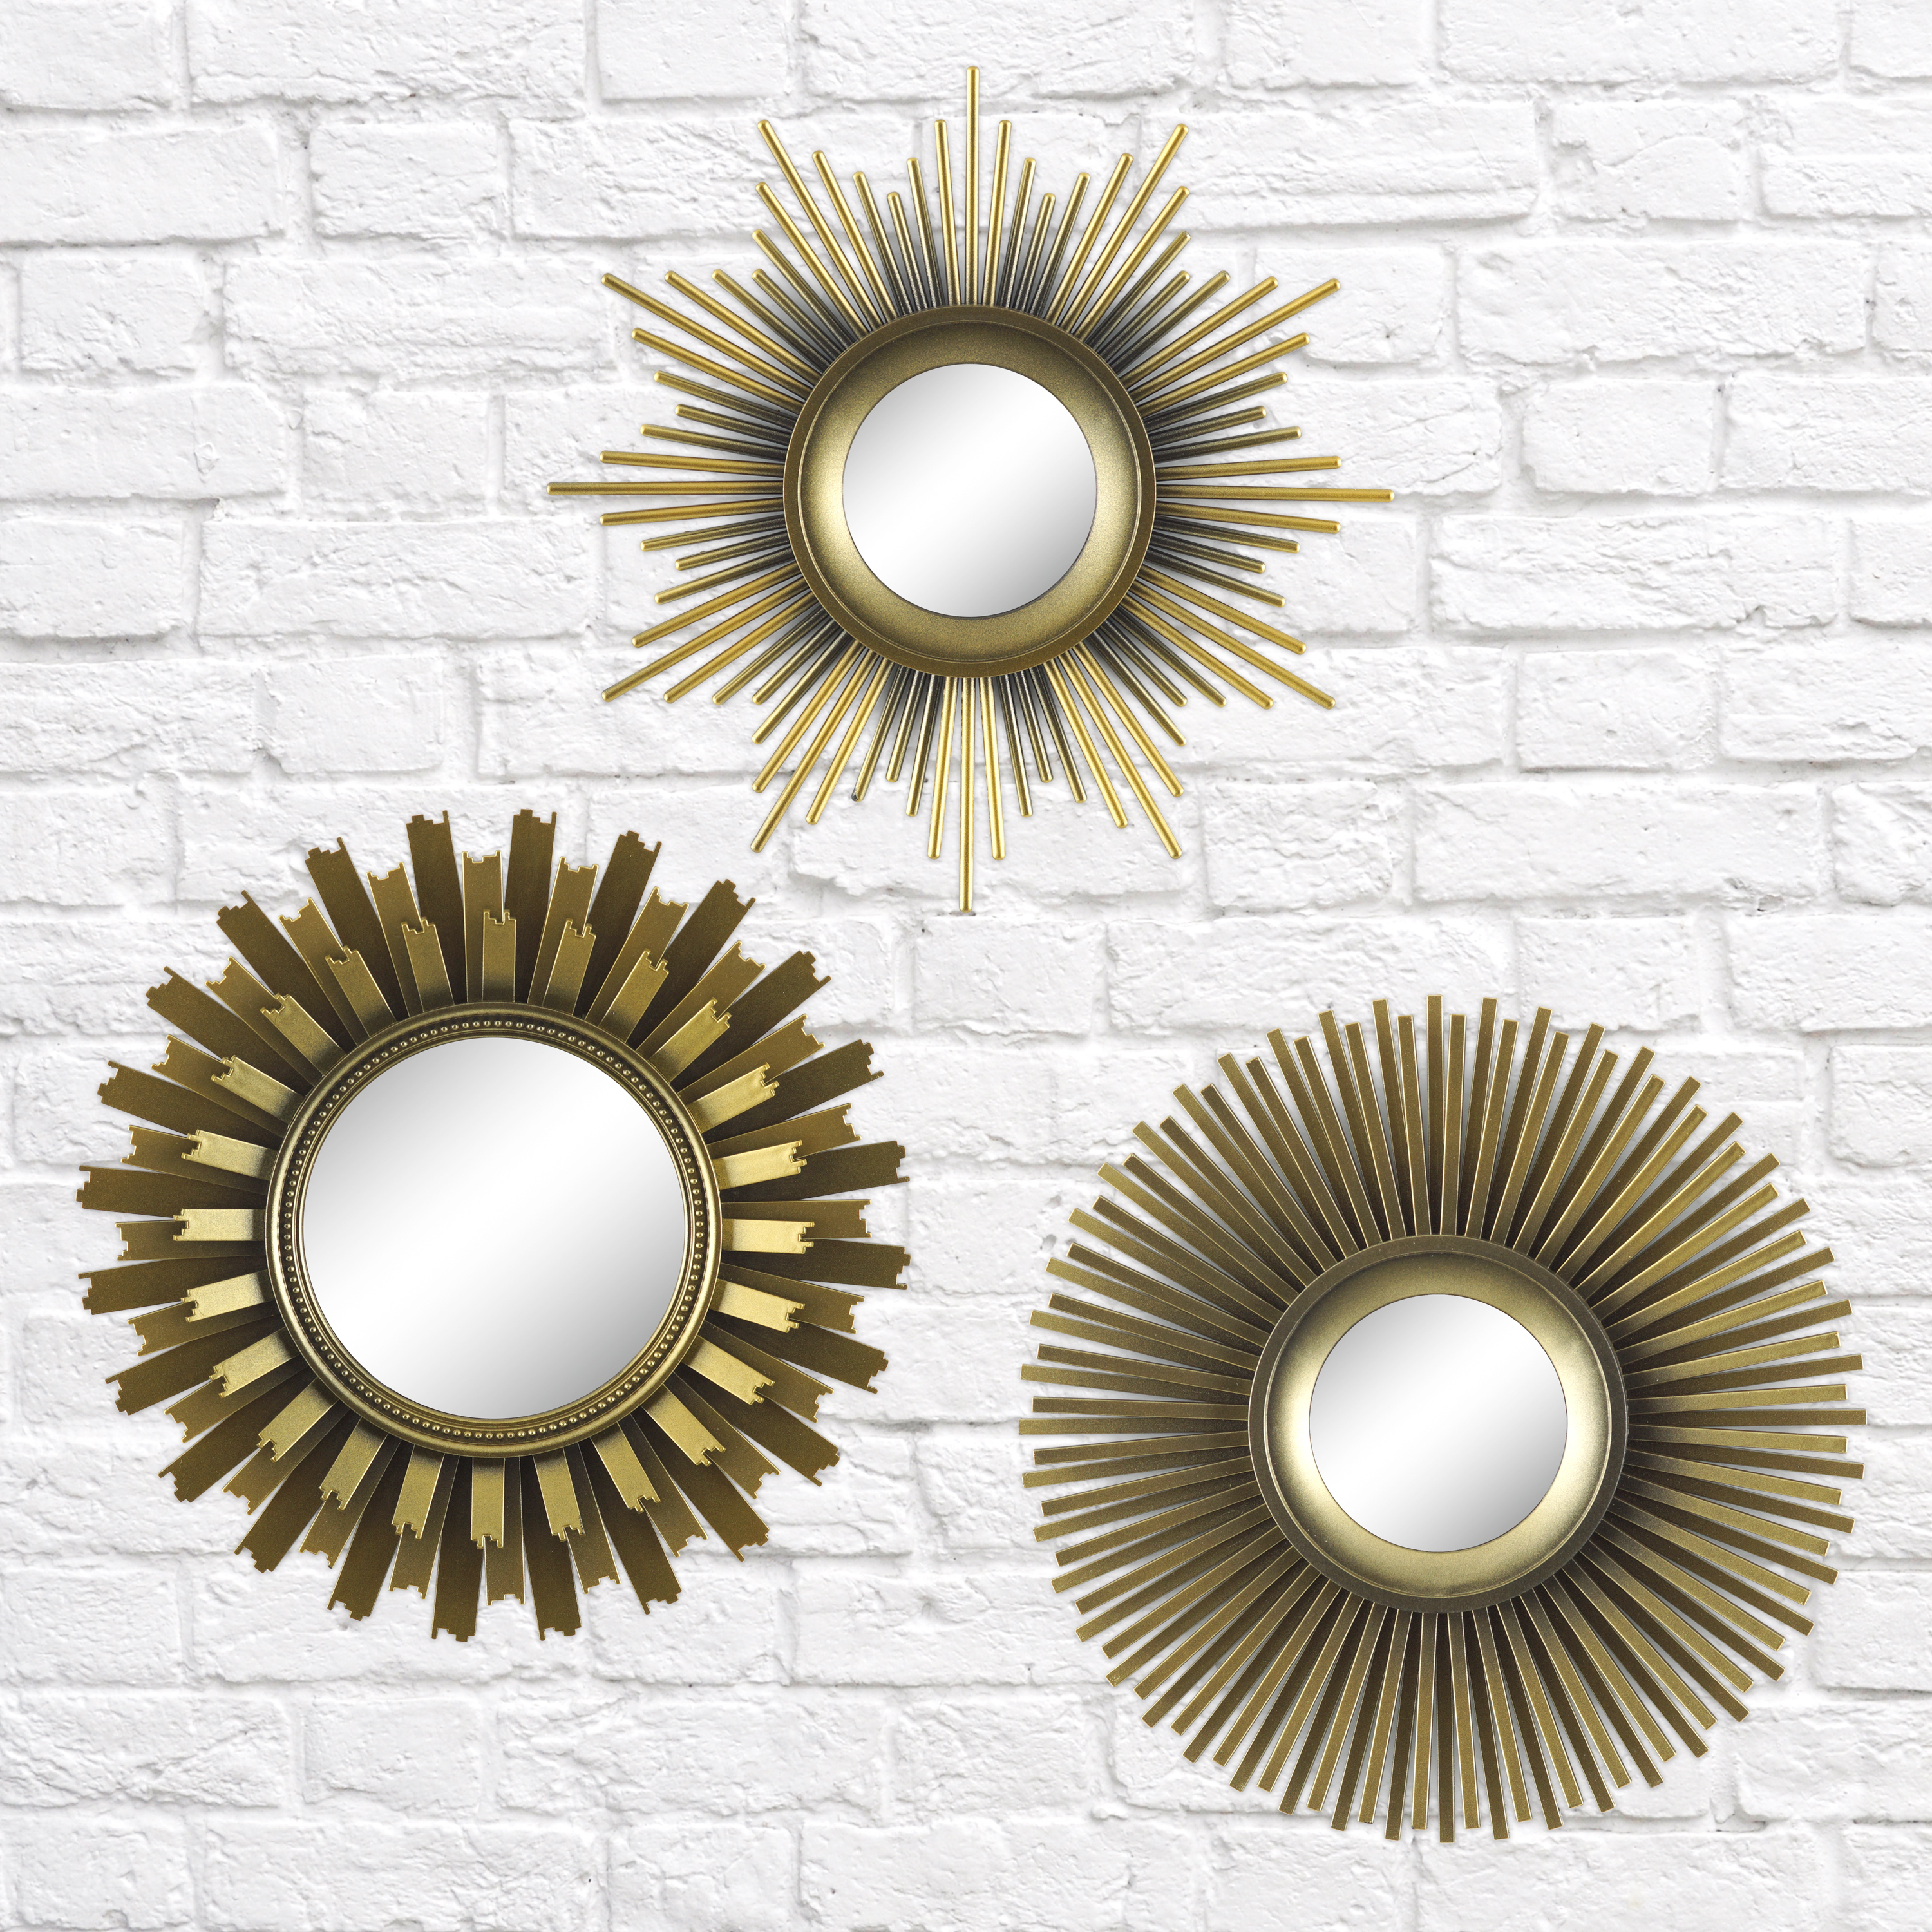 Well Liked Better Homes & Gardens 3 Piece Round Sunburst Mirror Set In Gold With Regard To 2 Piece Starburst Wall Decor Sets (View 19 of 20)